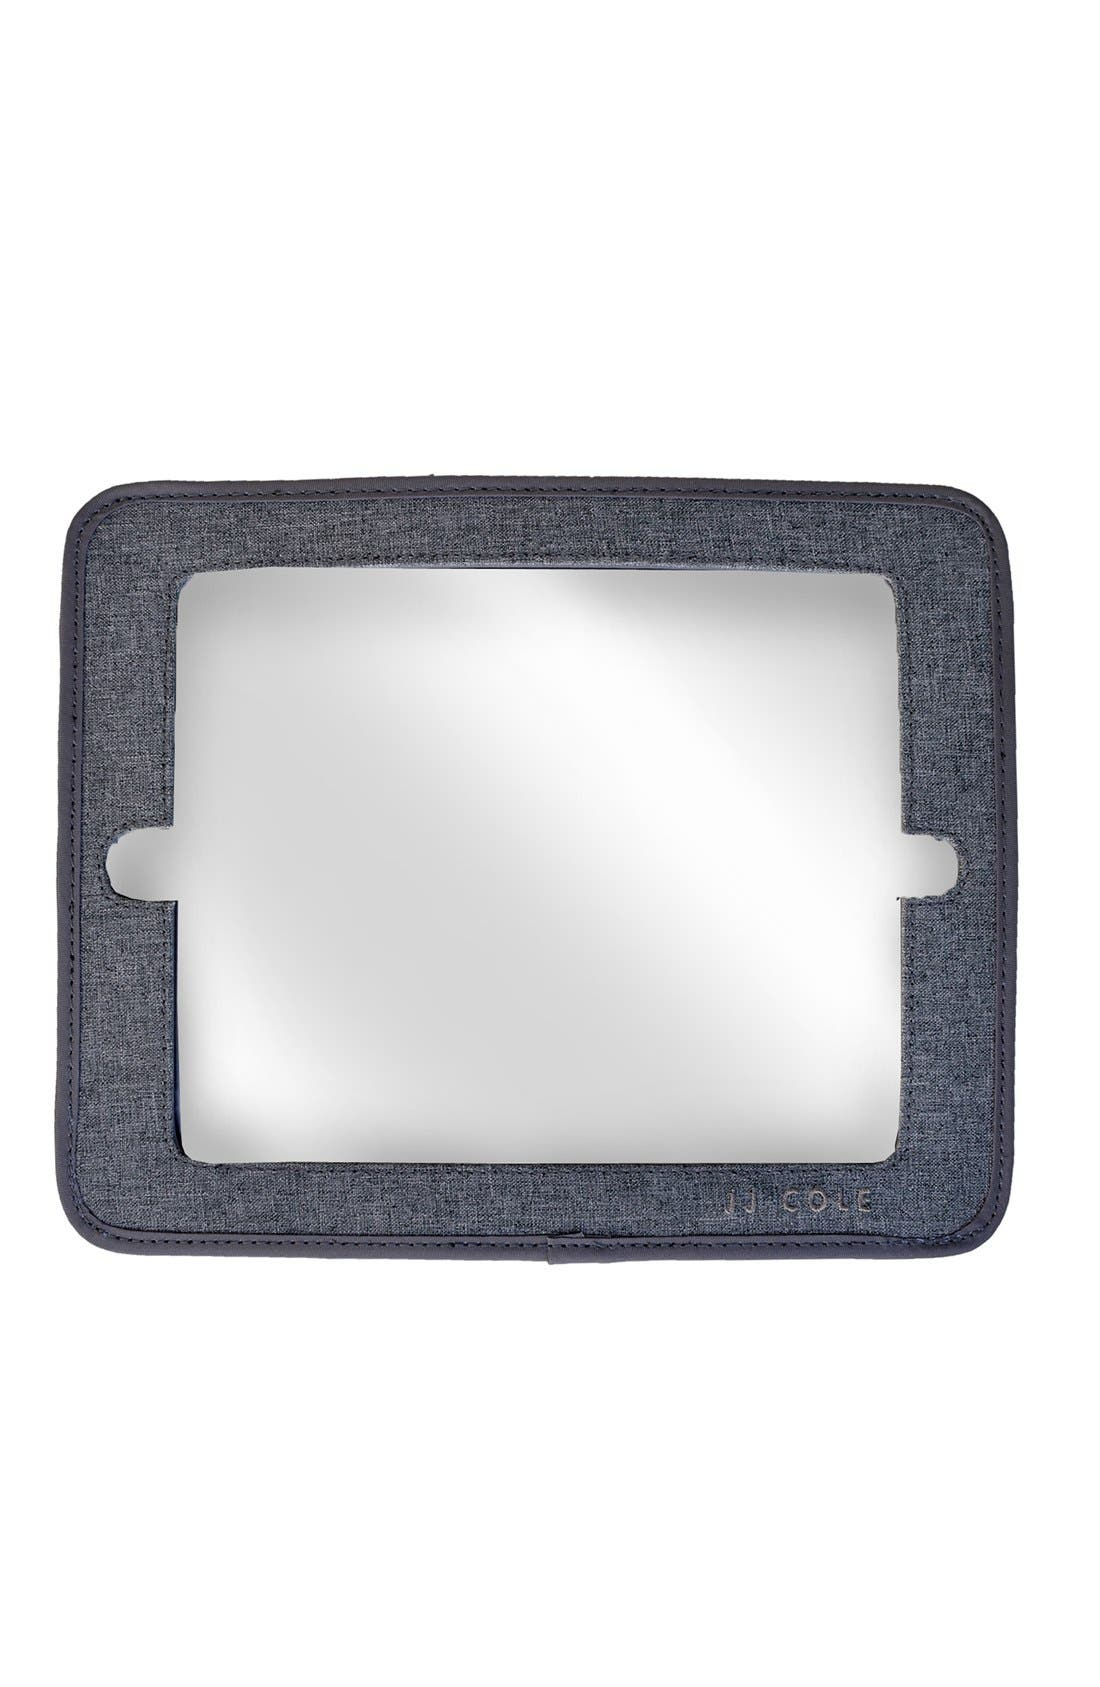 2-in-1 Mirror,                             Main thumbnail 1, color,                             020